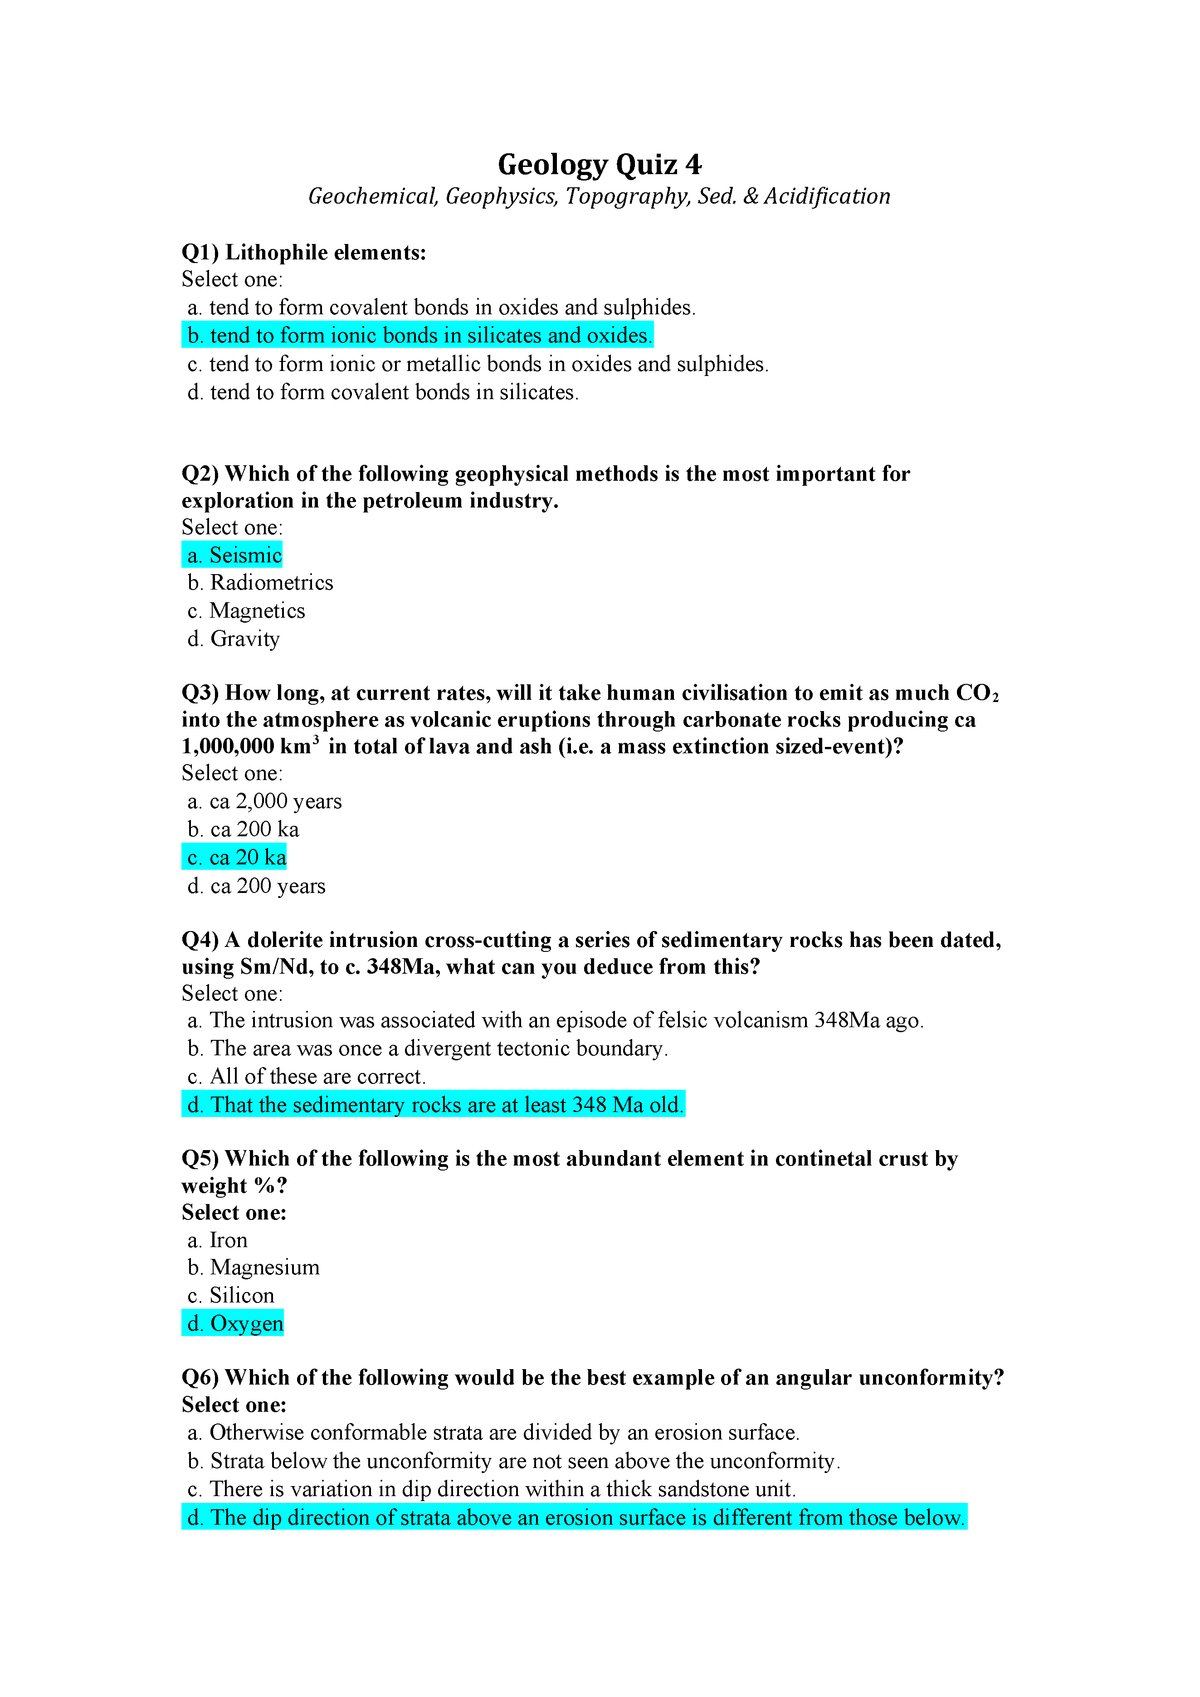 Practical - assessed quiz 4 questions and answers - EART1105